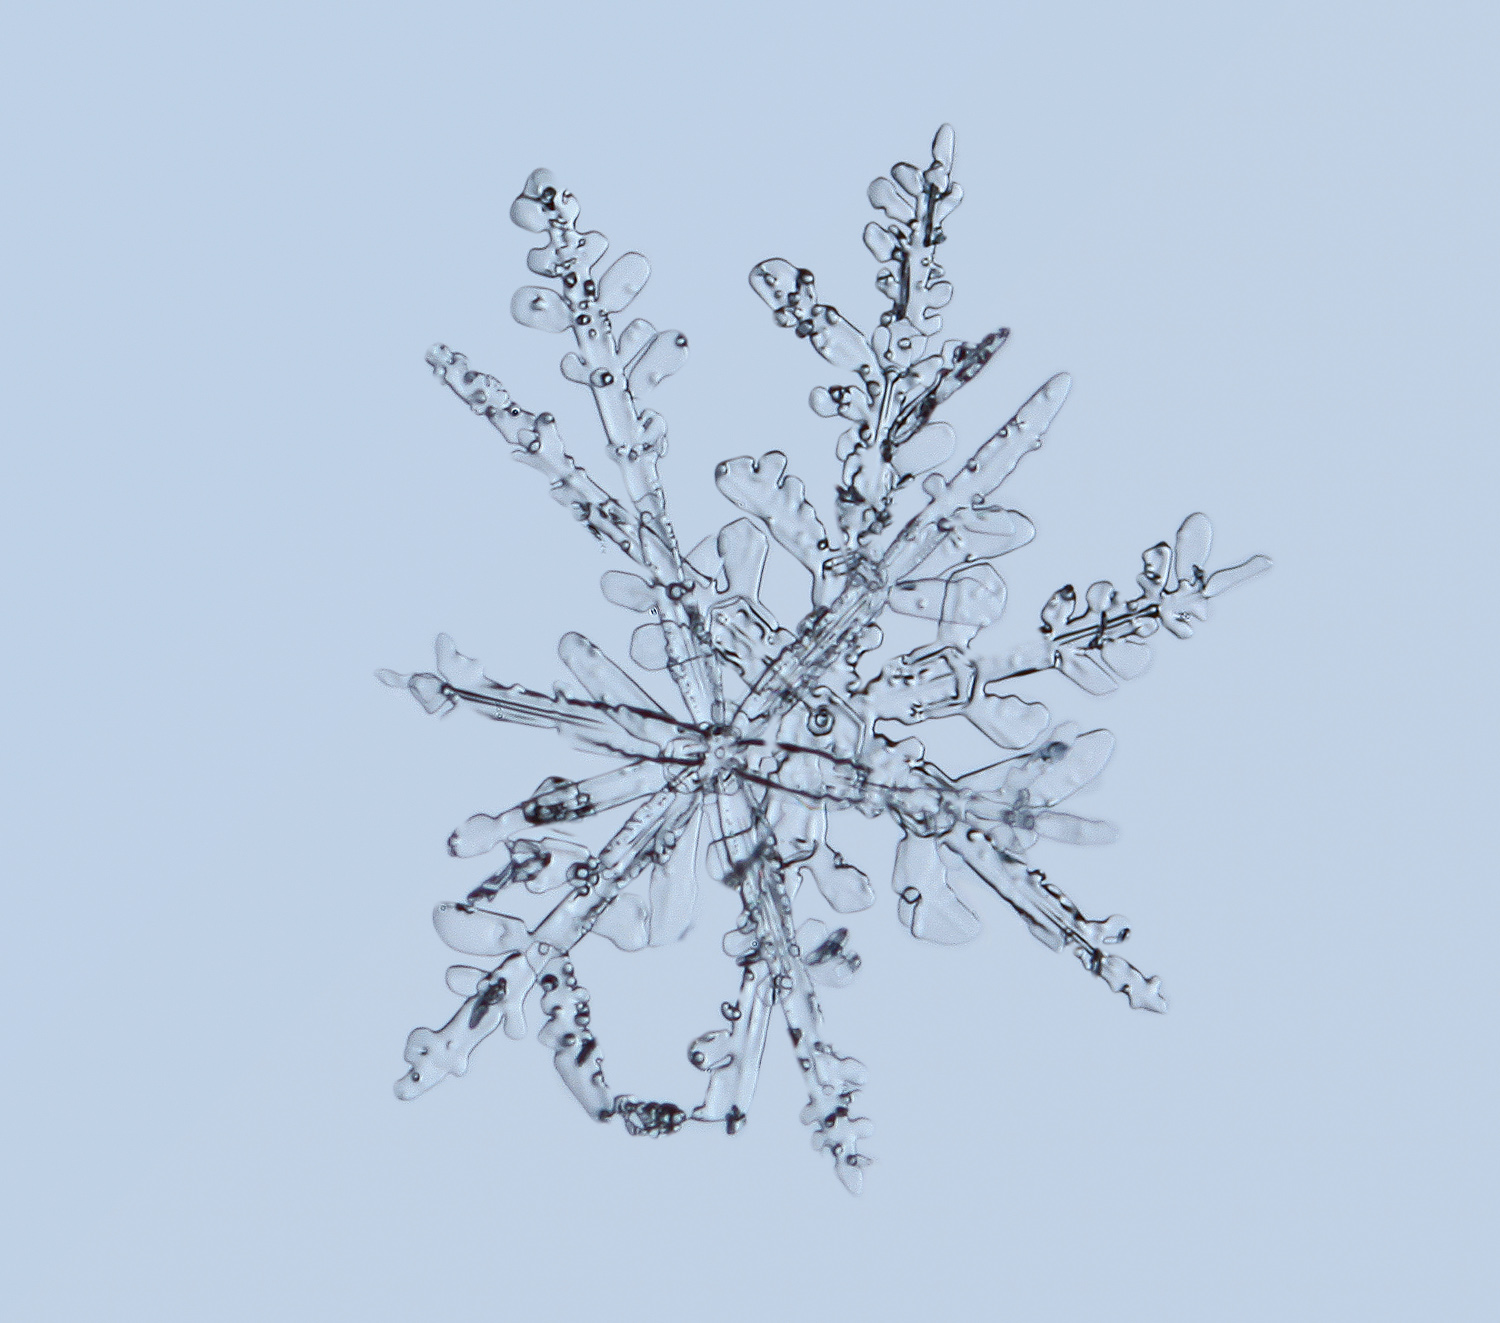 who s on top snowflakes img abcpew author sava gr gregory and verena